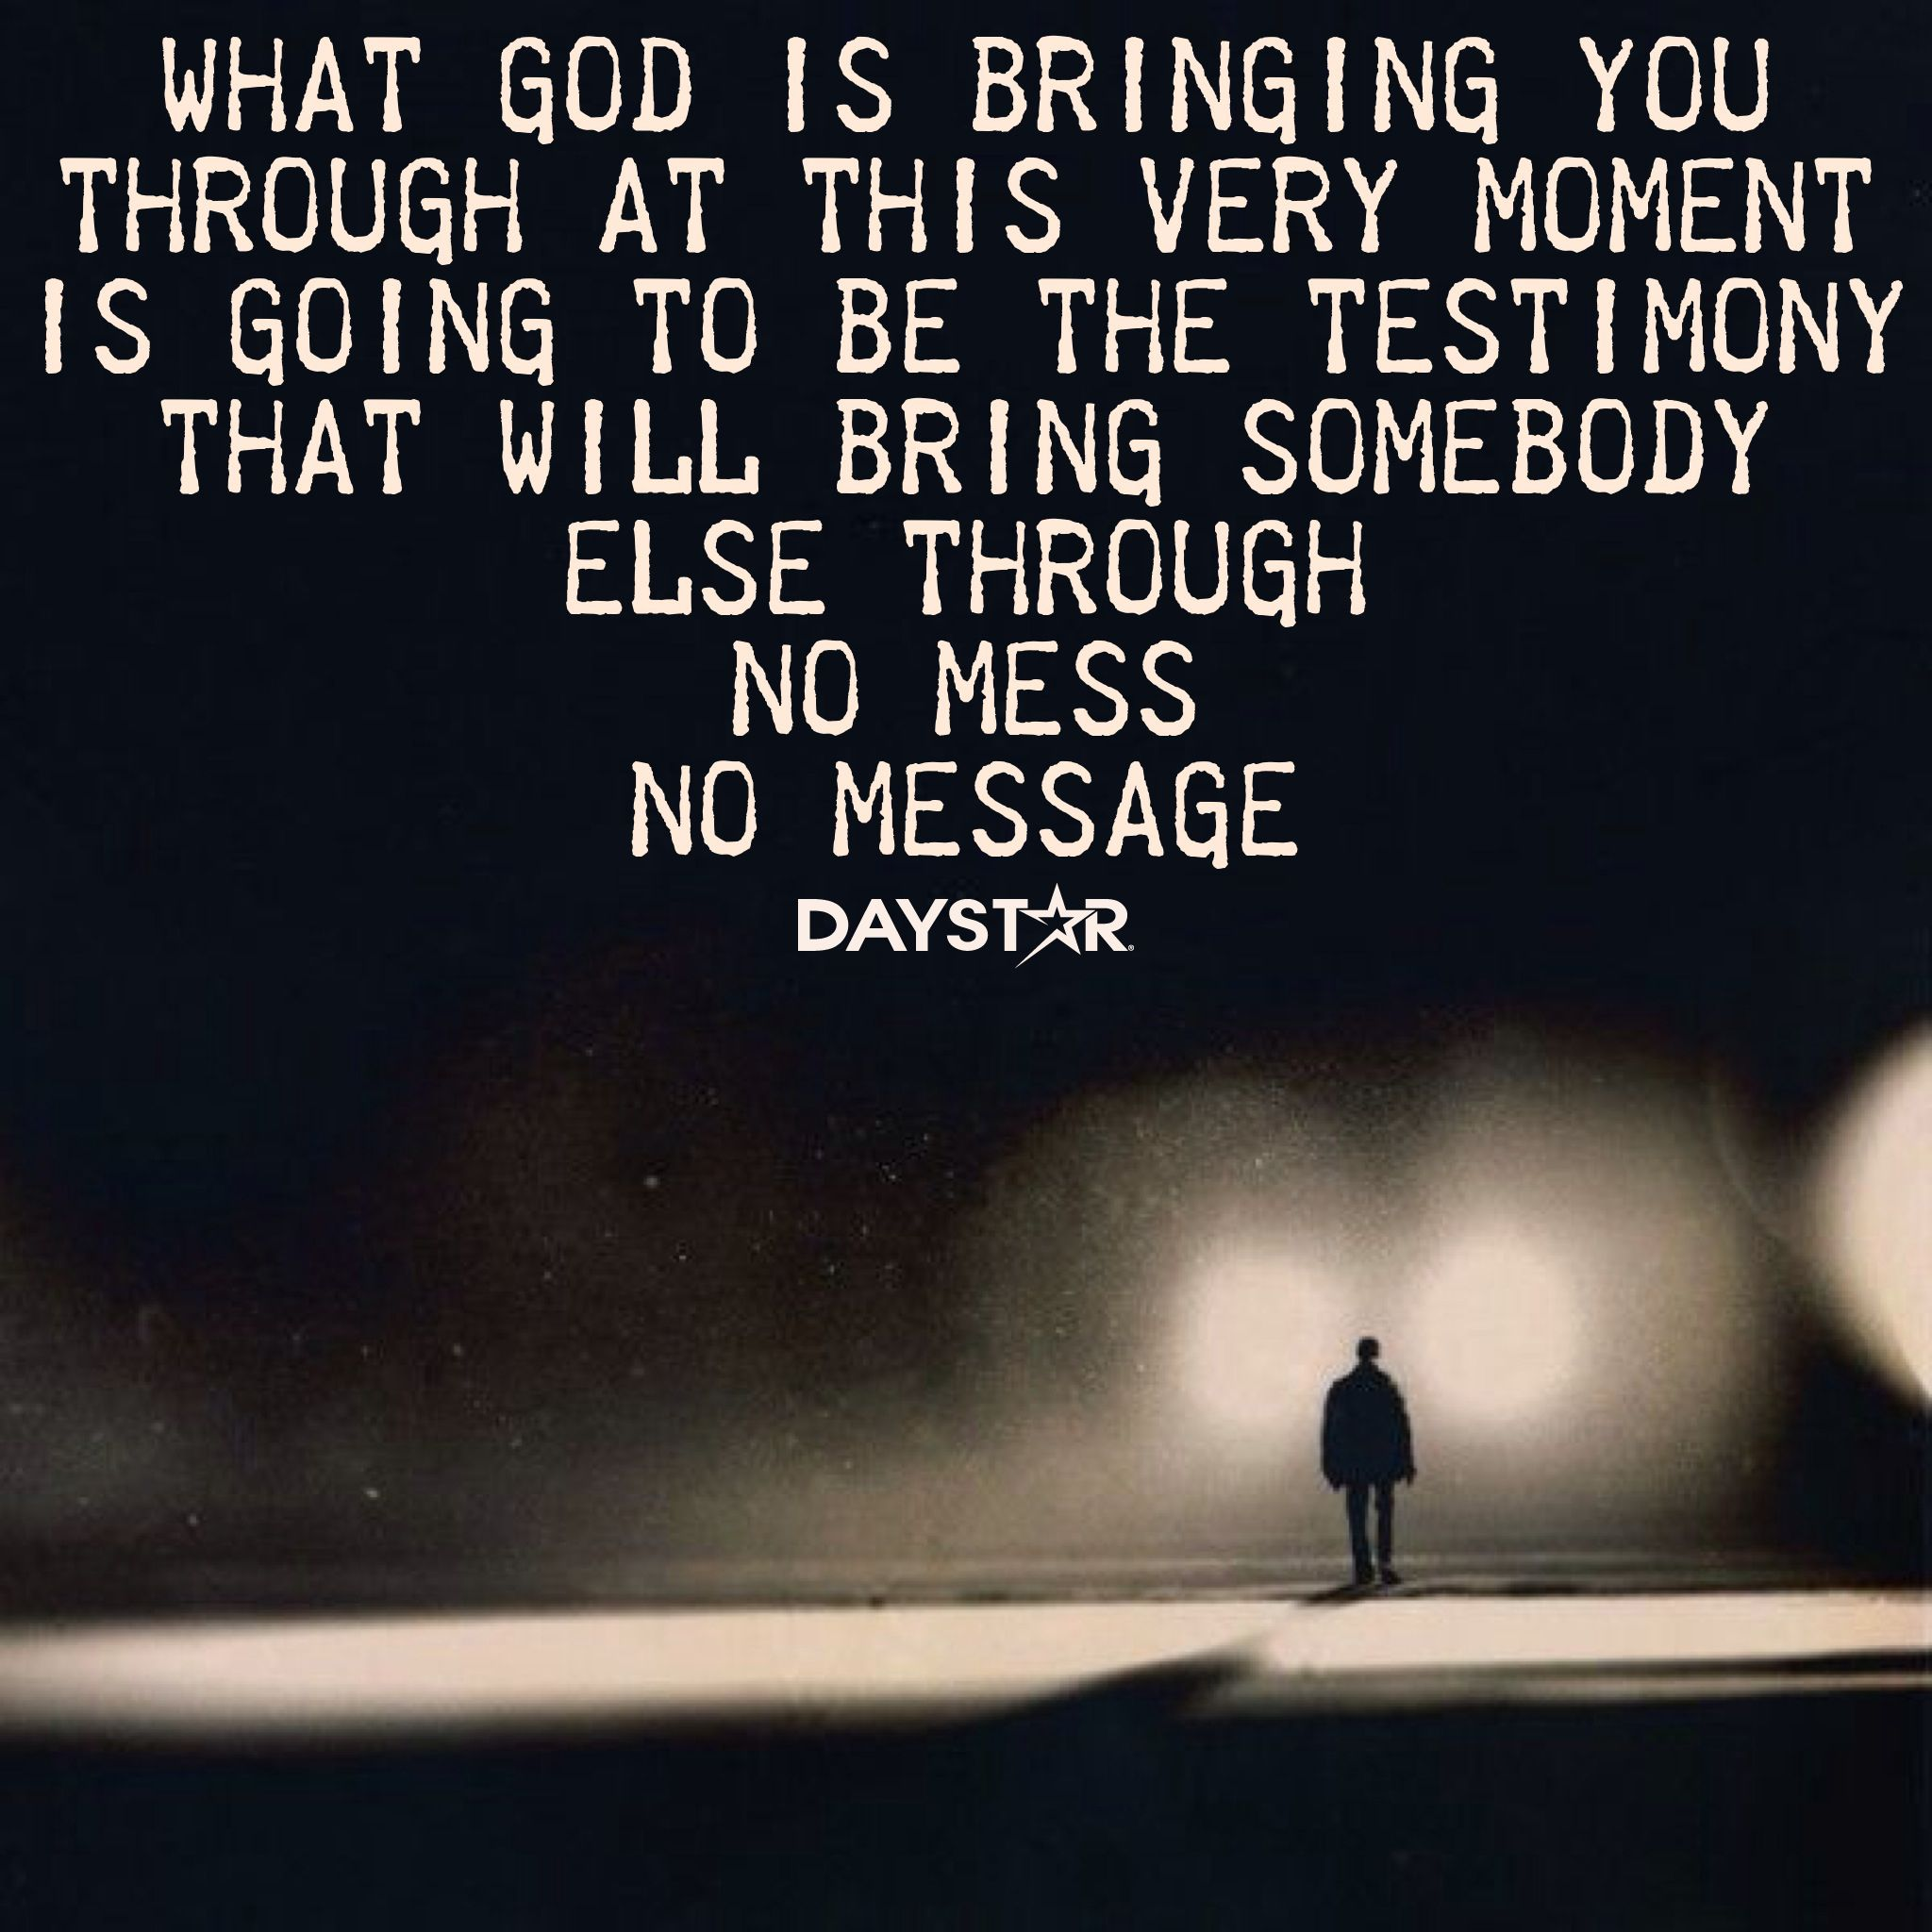 What God is bringing you through at this very moment is going to ...